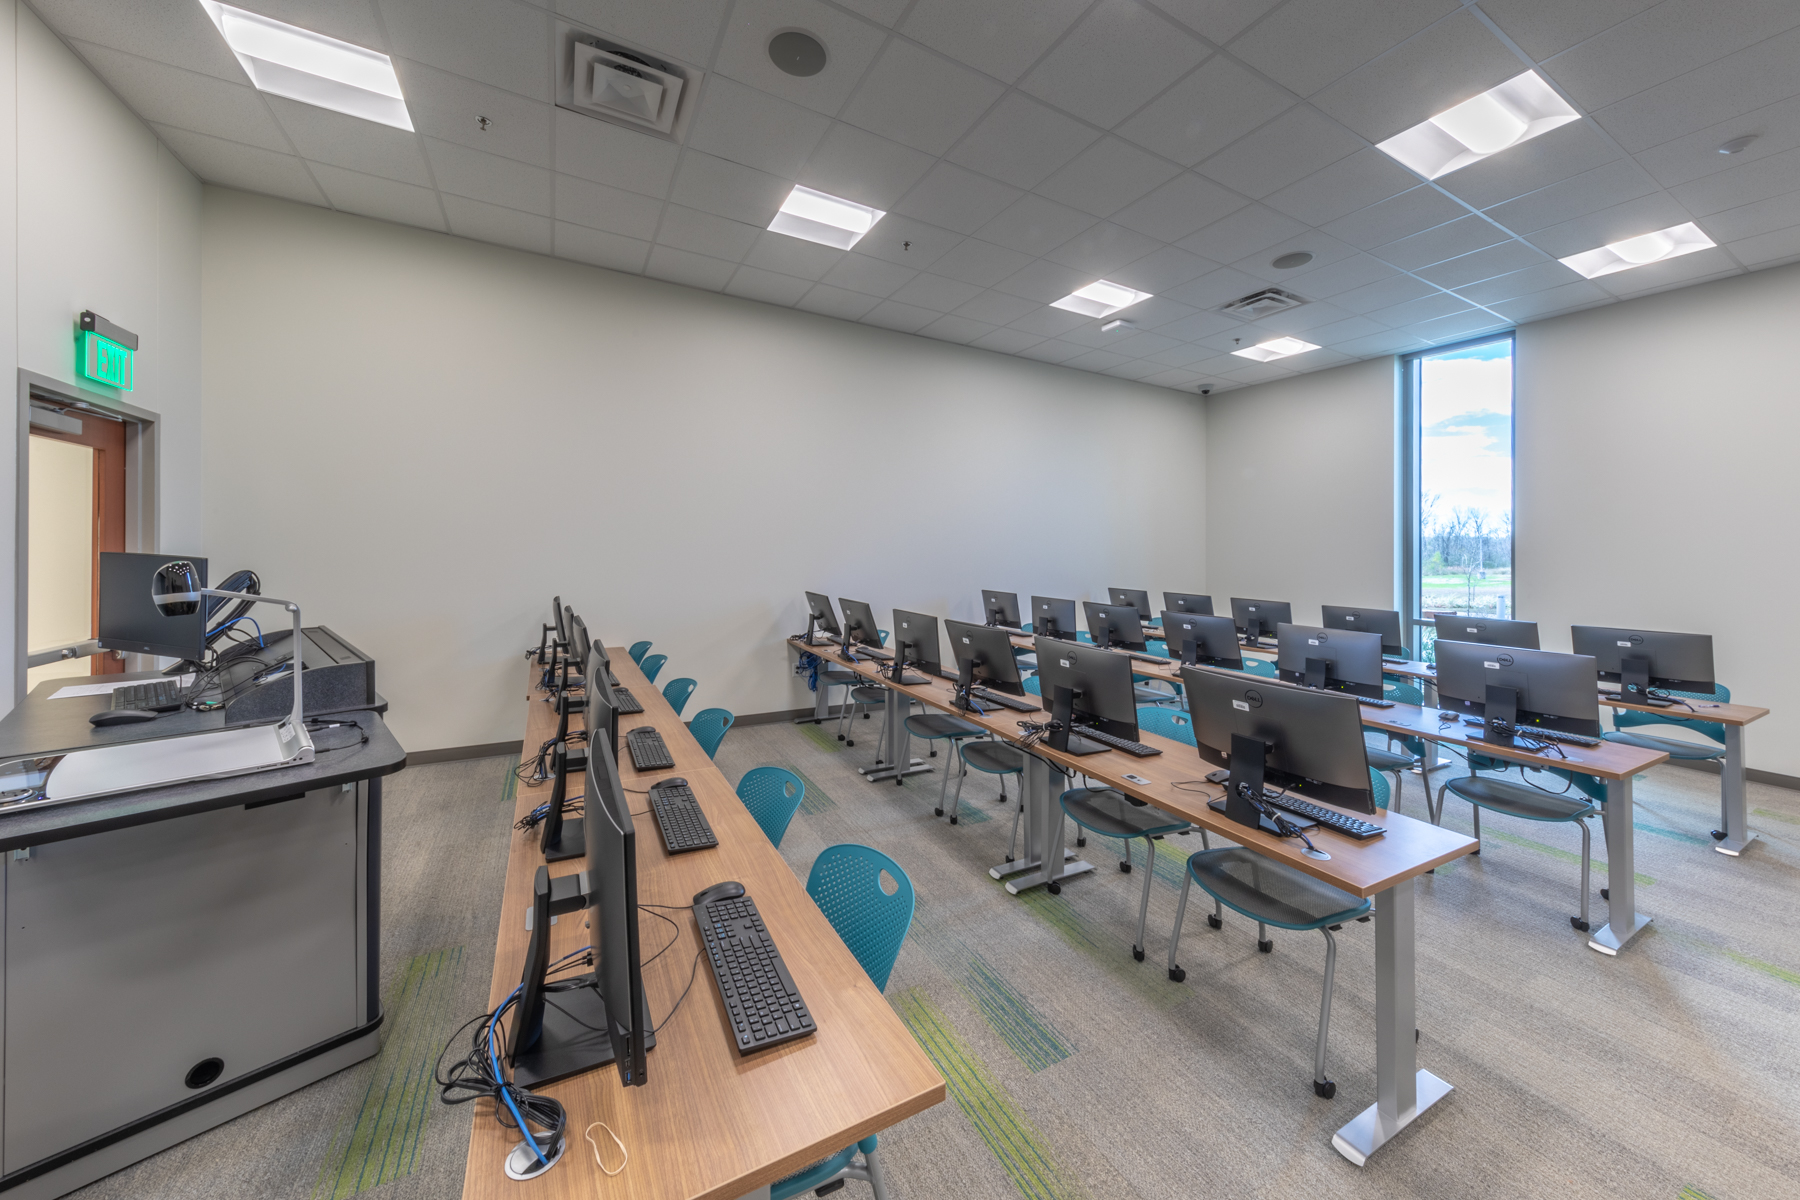 UHCL_Pearland_011019_sm-31.jpg